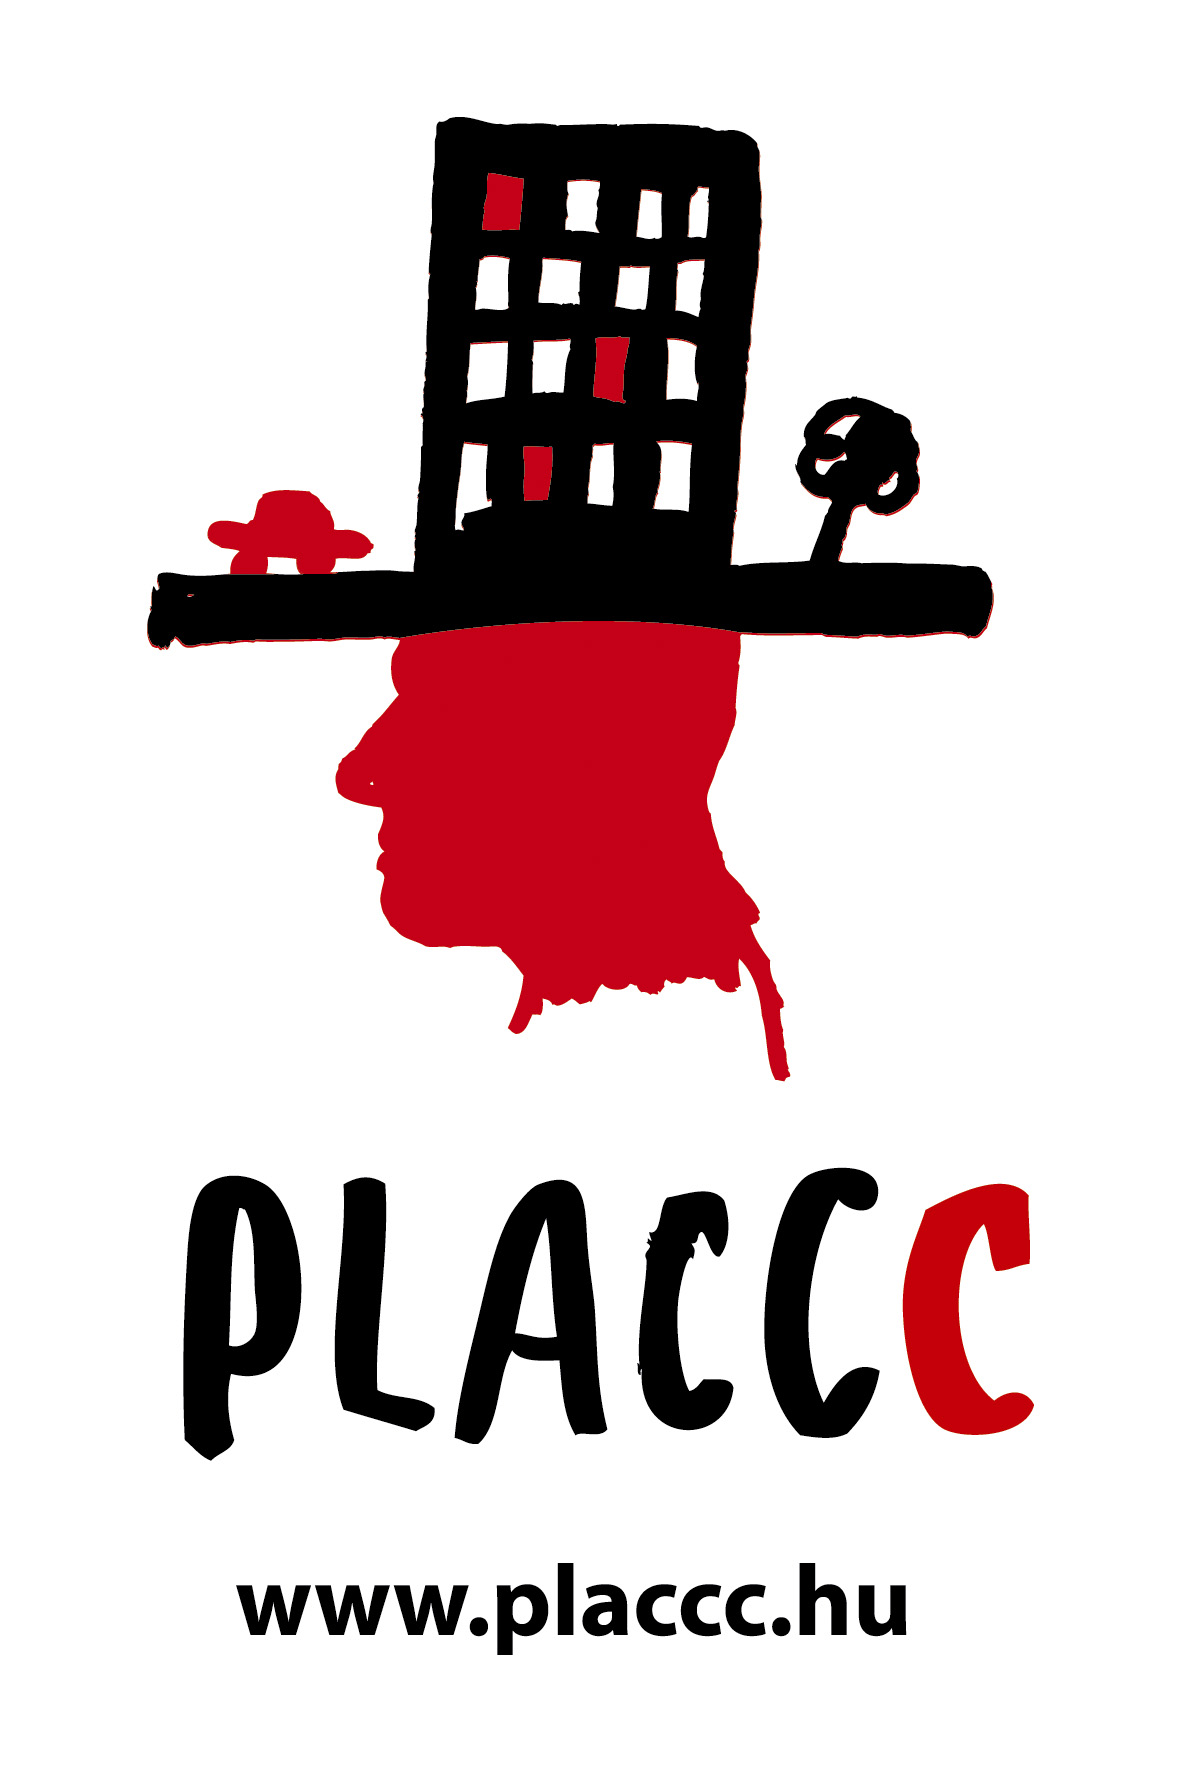 Placcc_logo_color